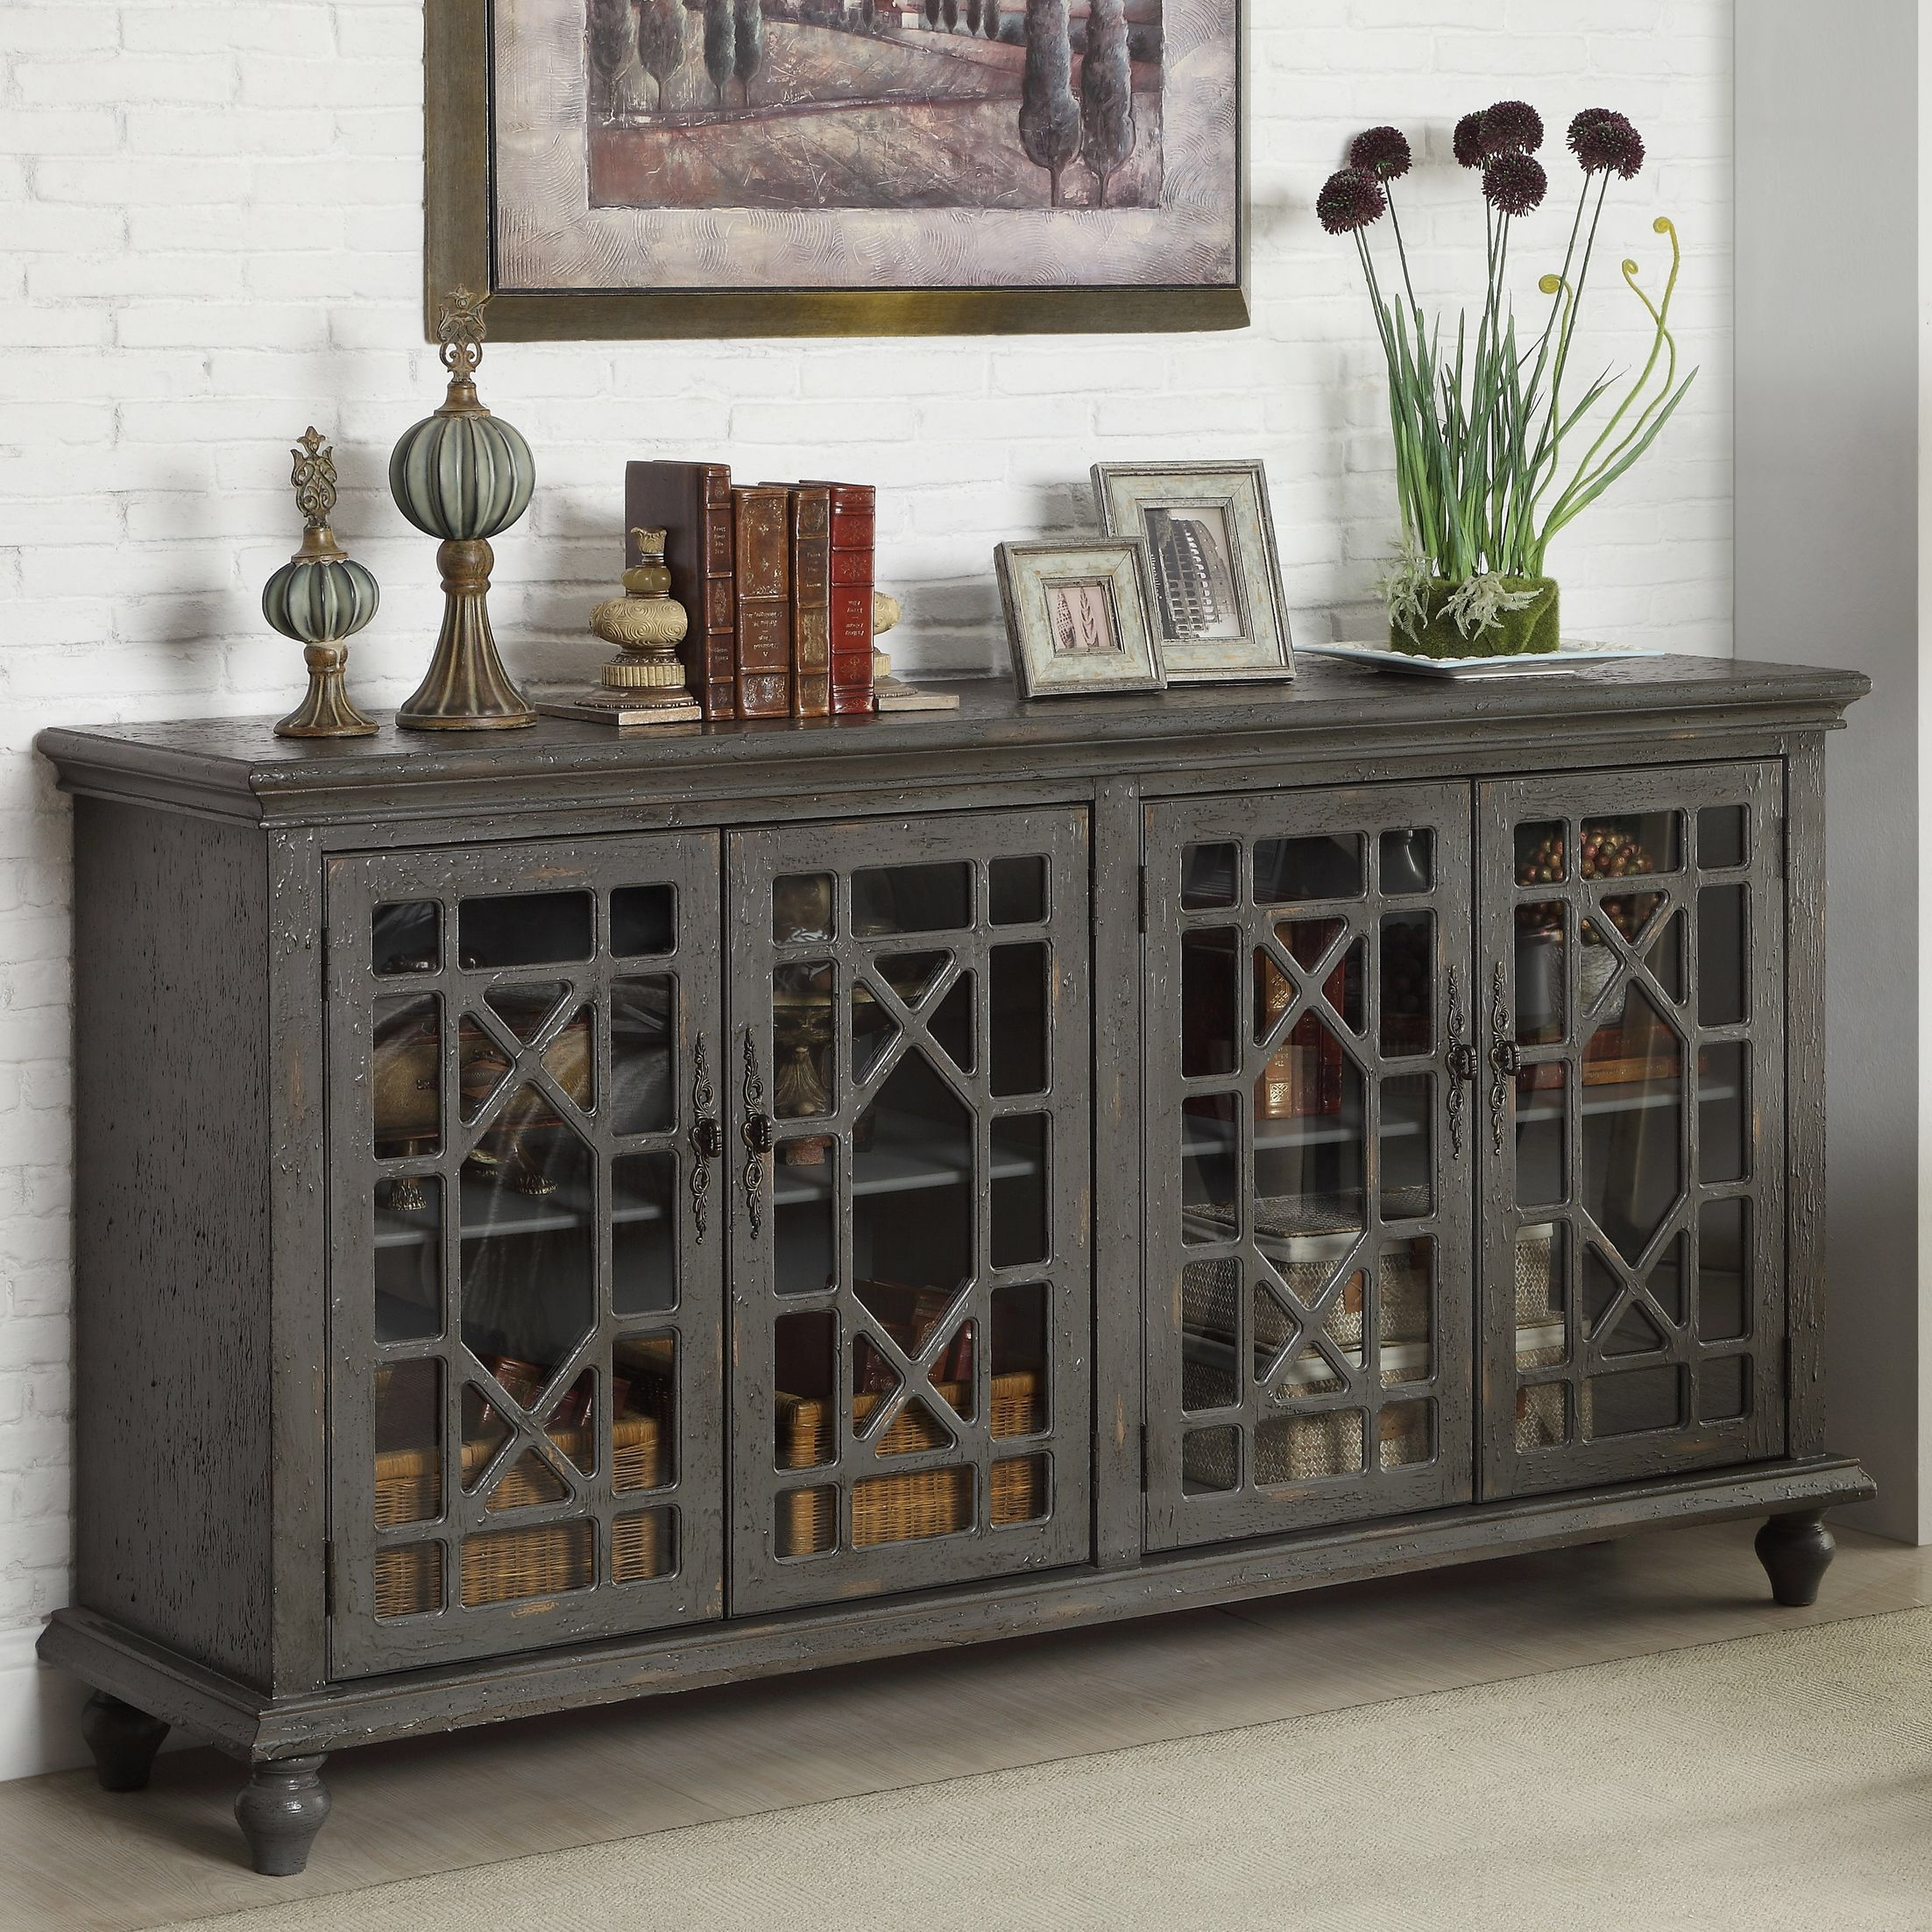 Craigslist Joplin Mo Furniture Concept credenza | tables & chairs | pinterest | credenza, living rooms